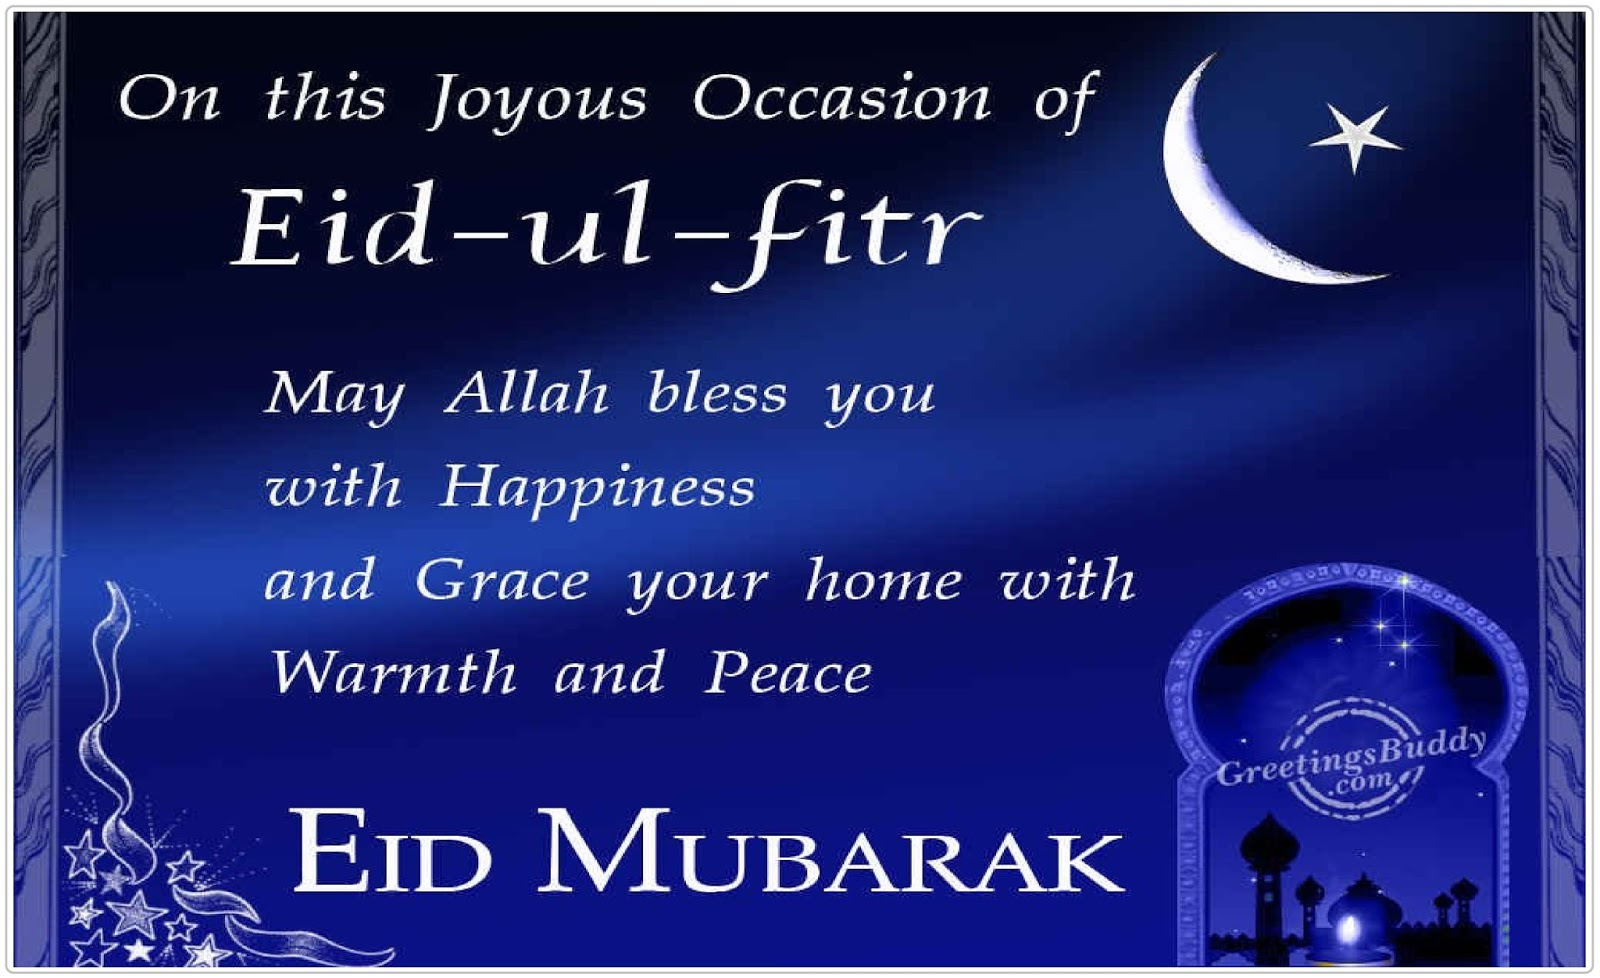 Eid mubarak wishes2018 quotes messages sms greetings status 2018 eid ul fitr greetings m4hsunfo